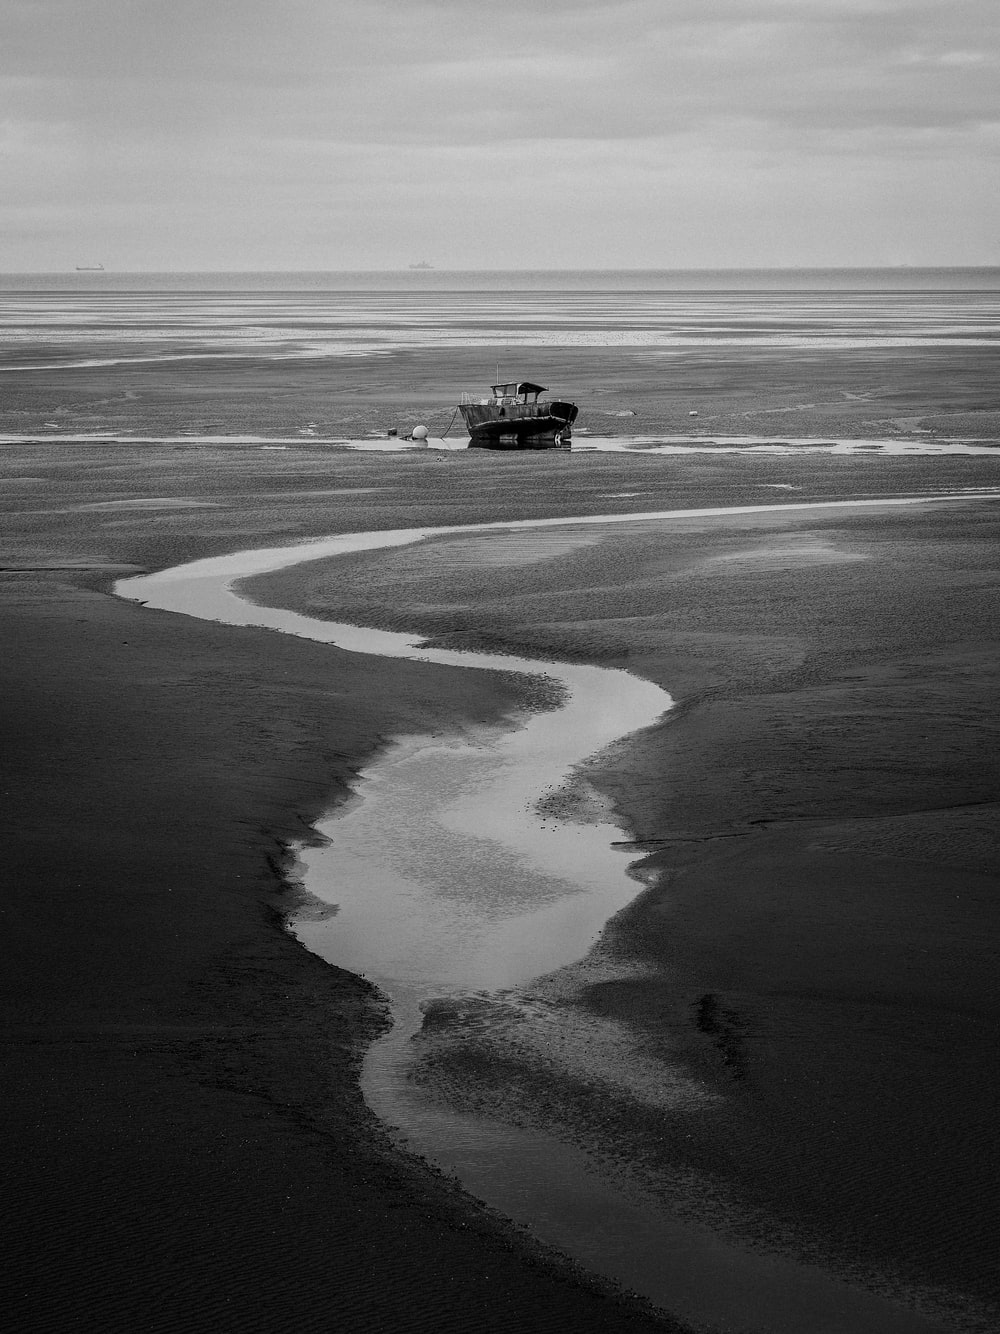 black and white boat on body of water during daytime